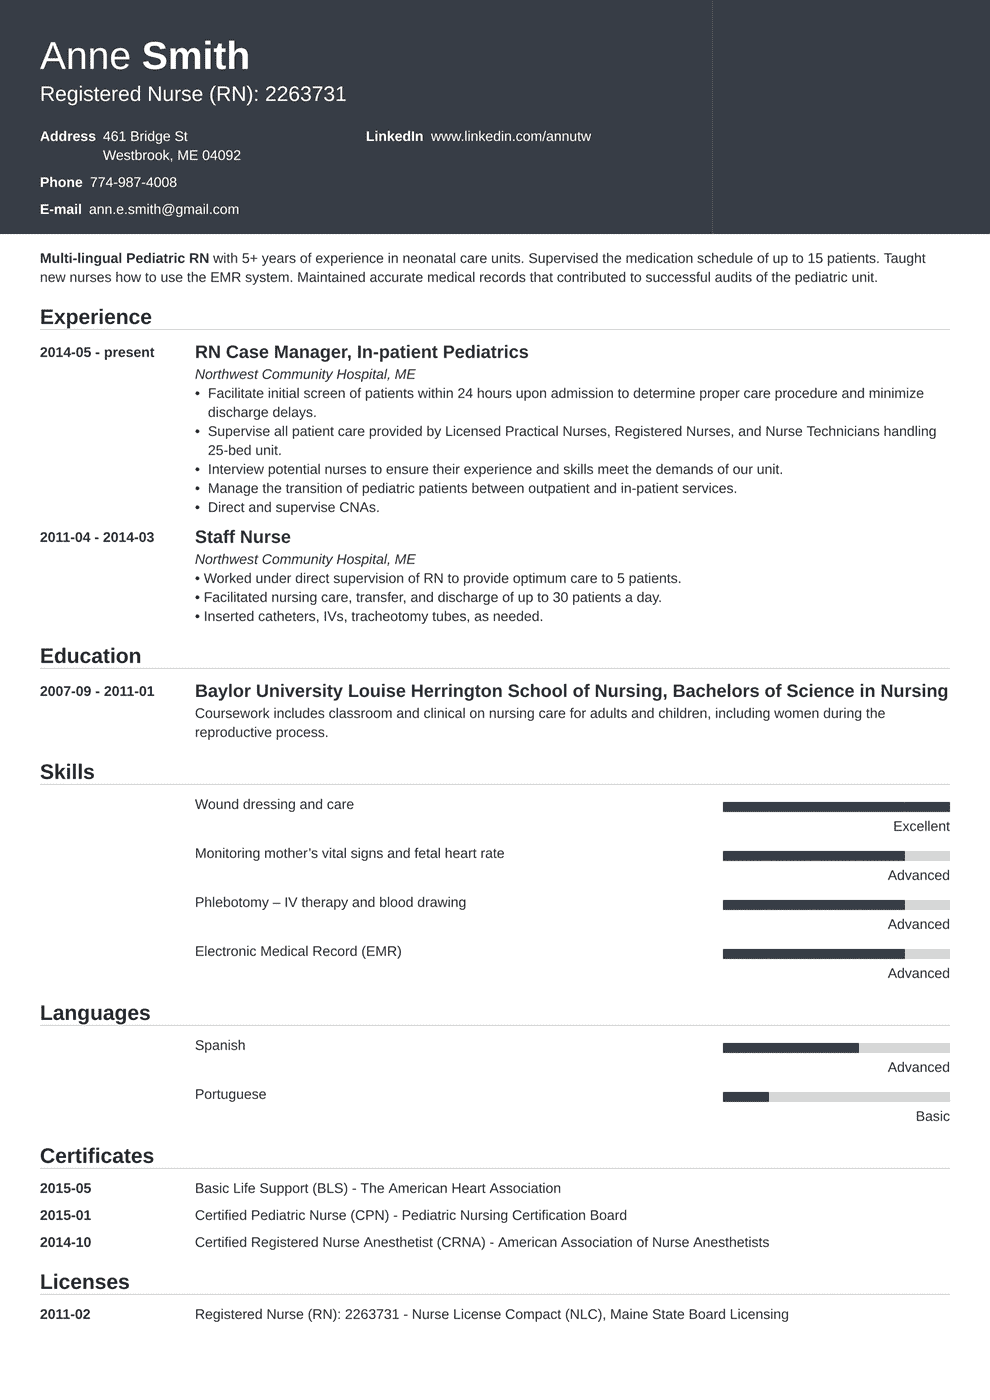 Nursing Resume Template & Guide [Examples of Experience & Skills]